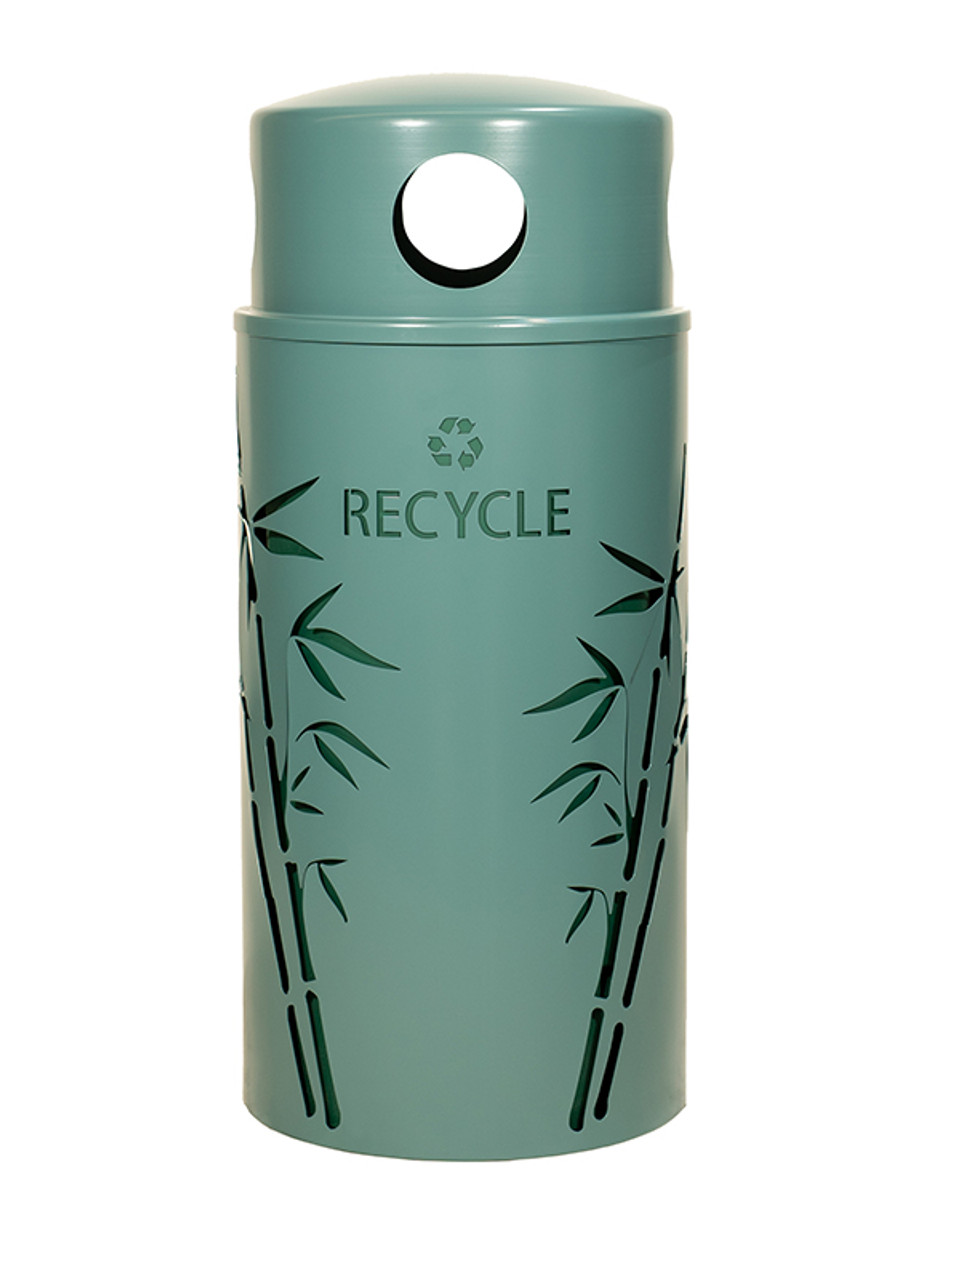 33 Gallon Nature Series Green Recycle Bin w/Anchor and Pole Kit (Bamboo Design)